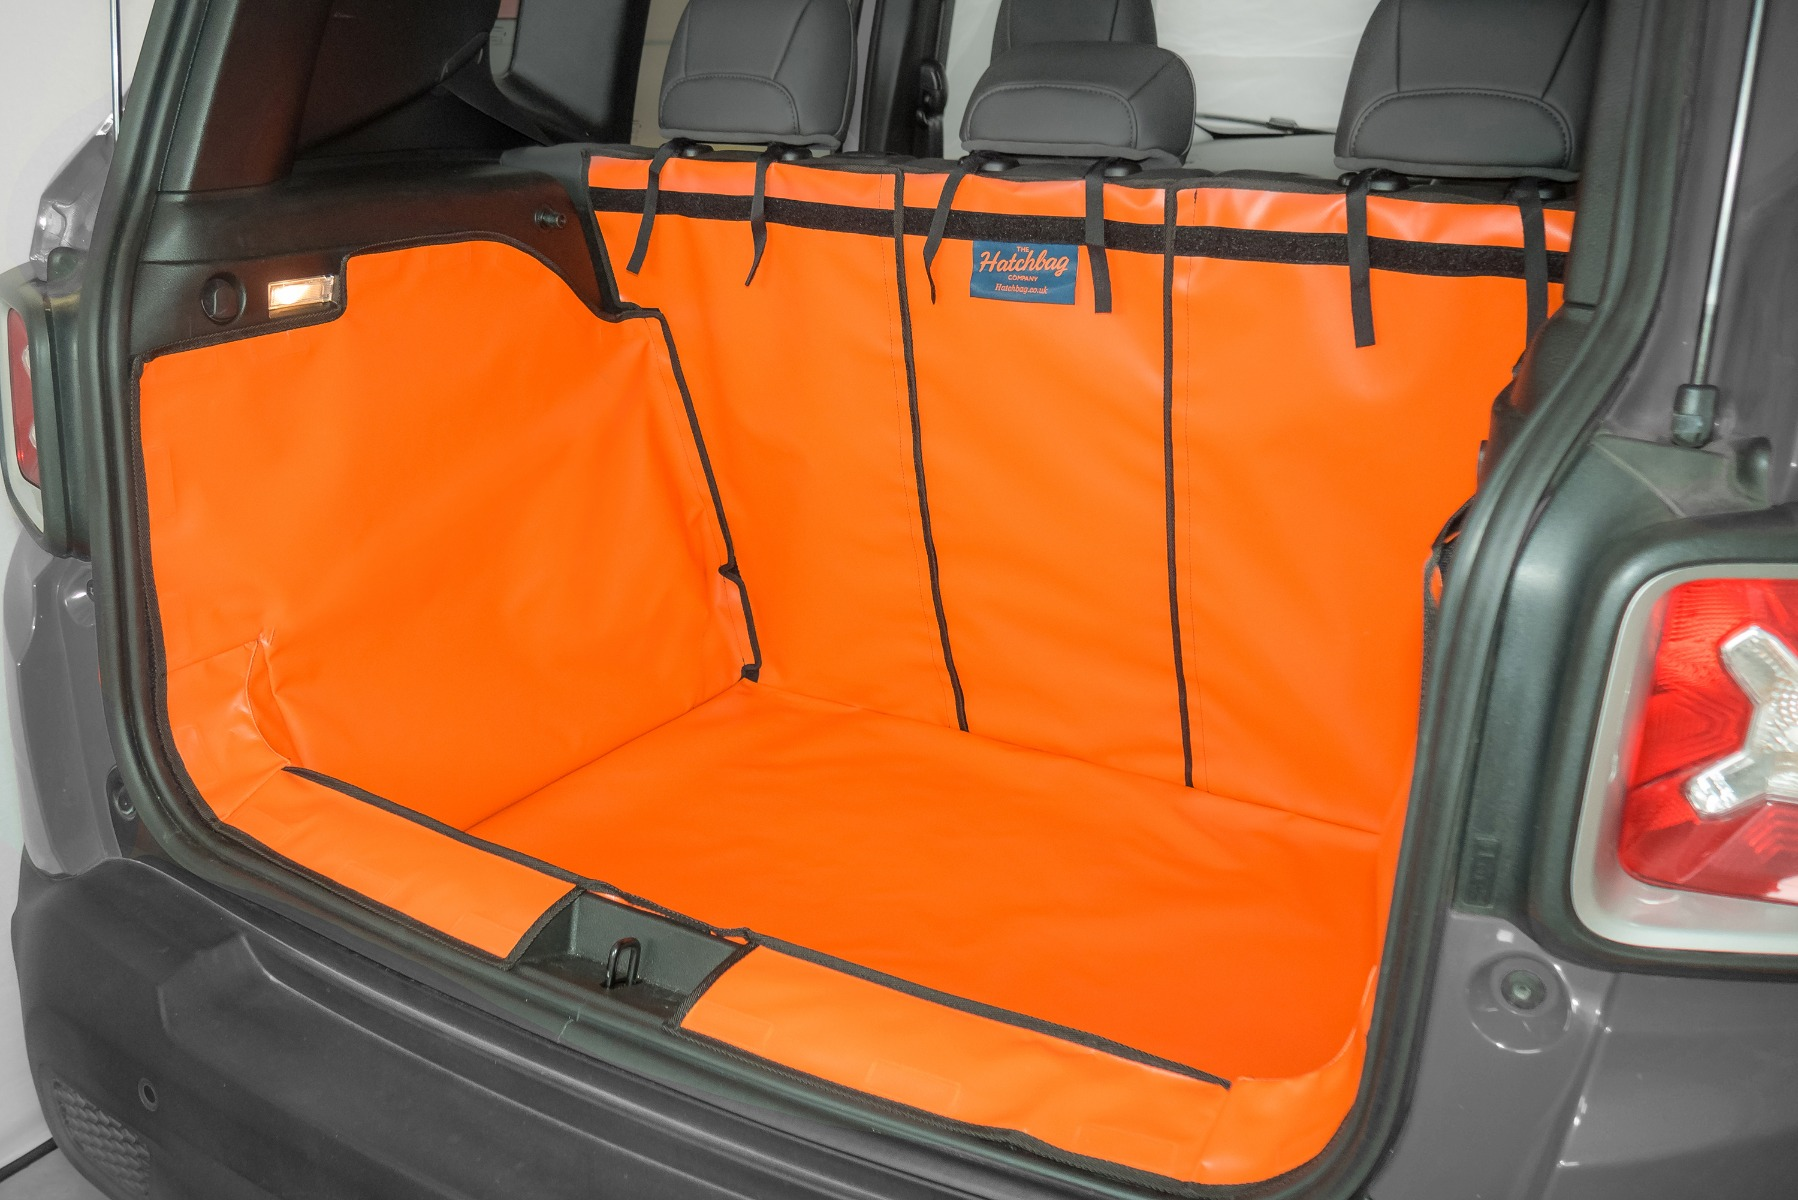 Hatchbag boot liner in orange